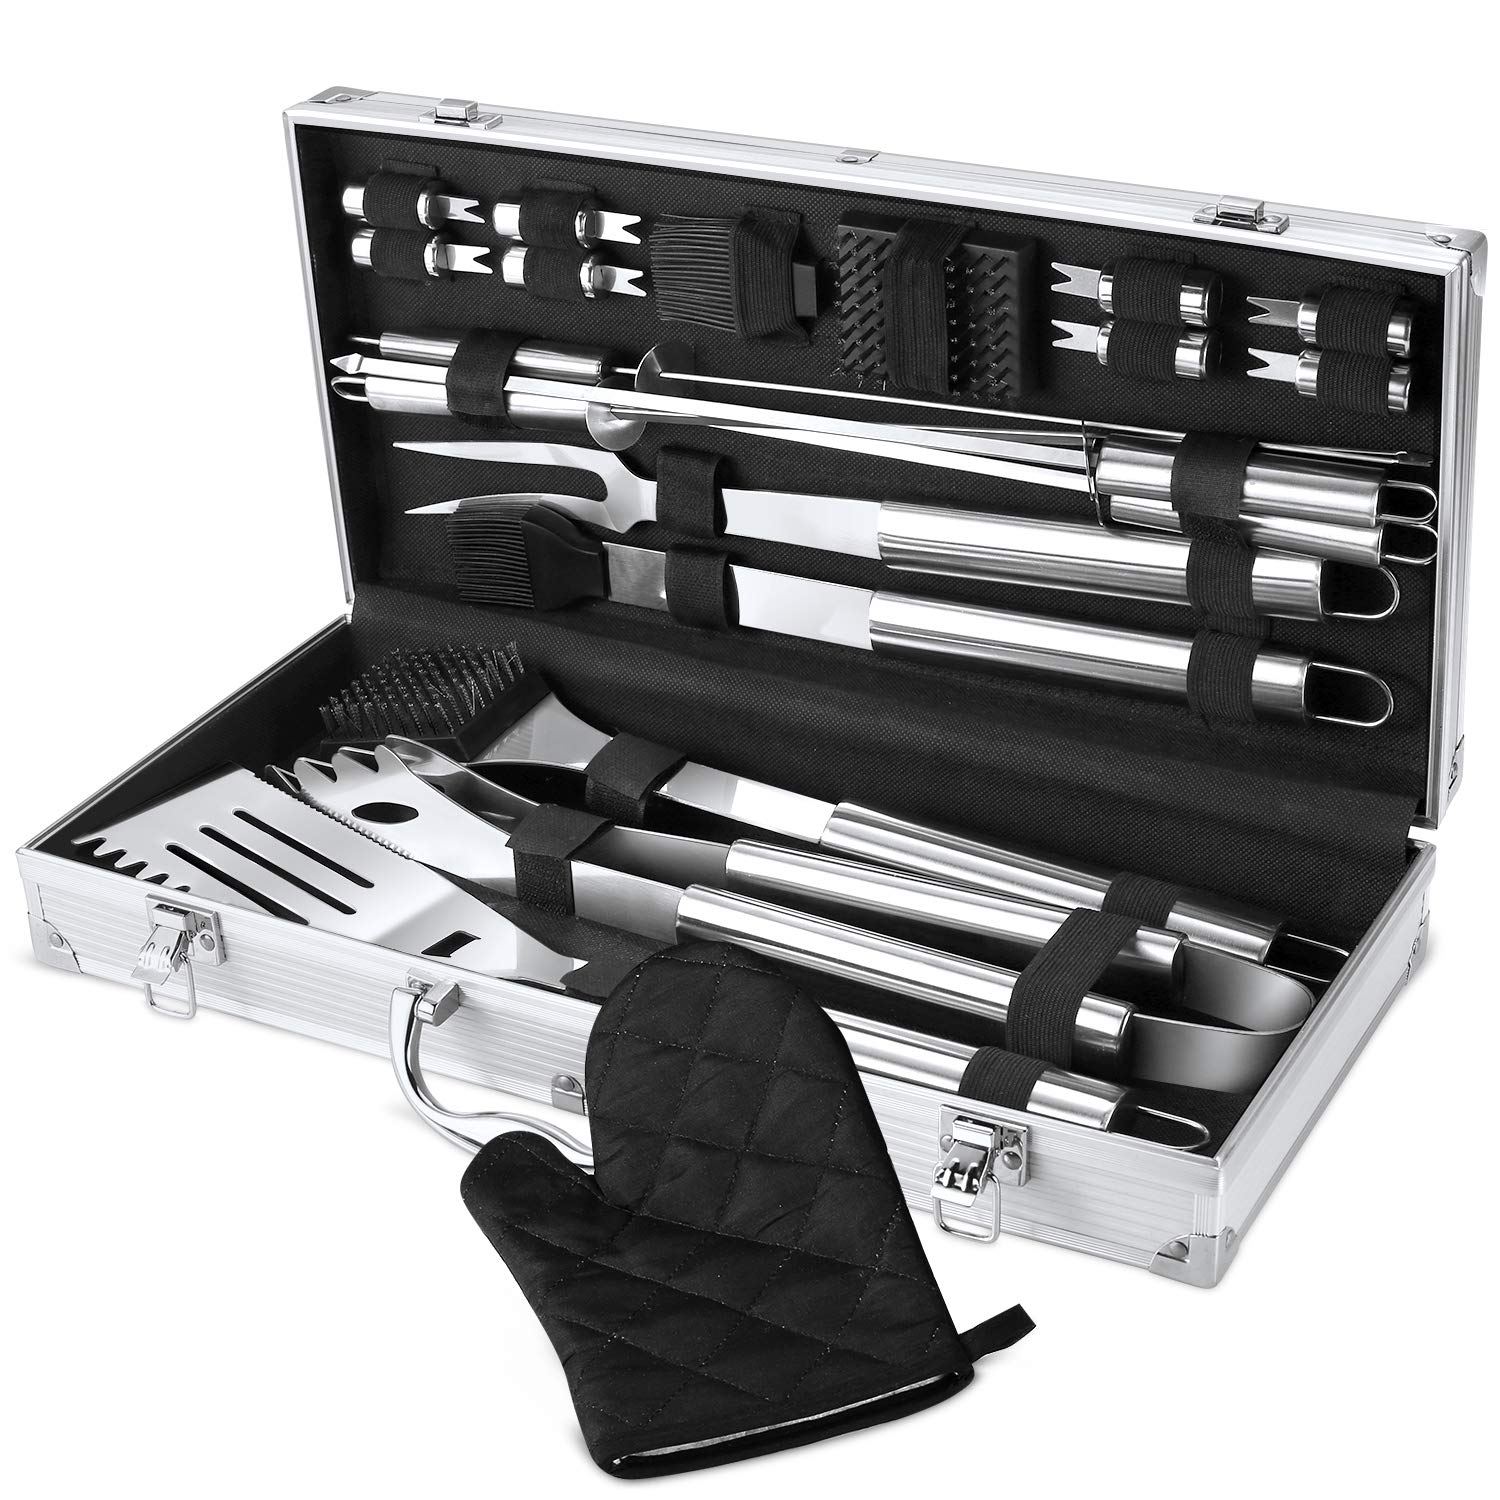 FYLINA BBQ Grill Tool Set 21-Piece Heavy Duty Stainless Steel Barbecue Grilling Tools with Aluminum Storage Case, Premium Grilling Accessories for BBQ – Spatula, Tongs, Forks, and Basting Brush